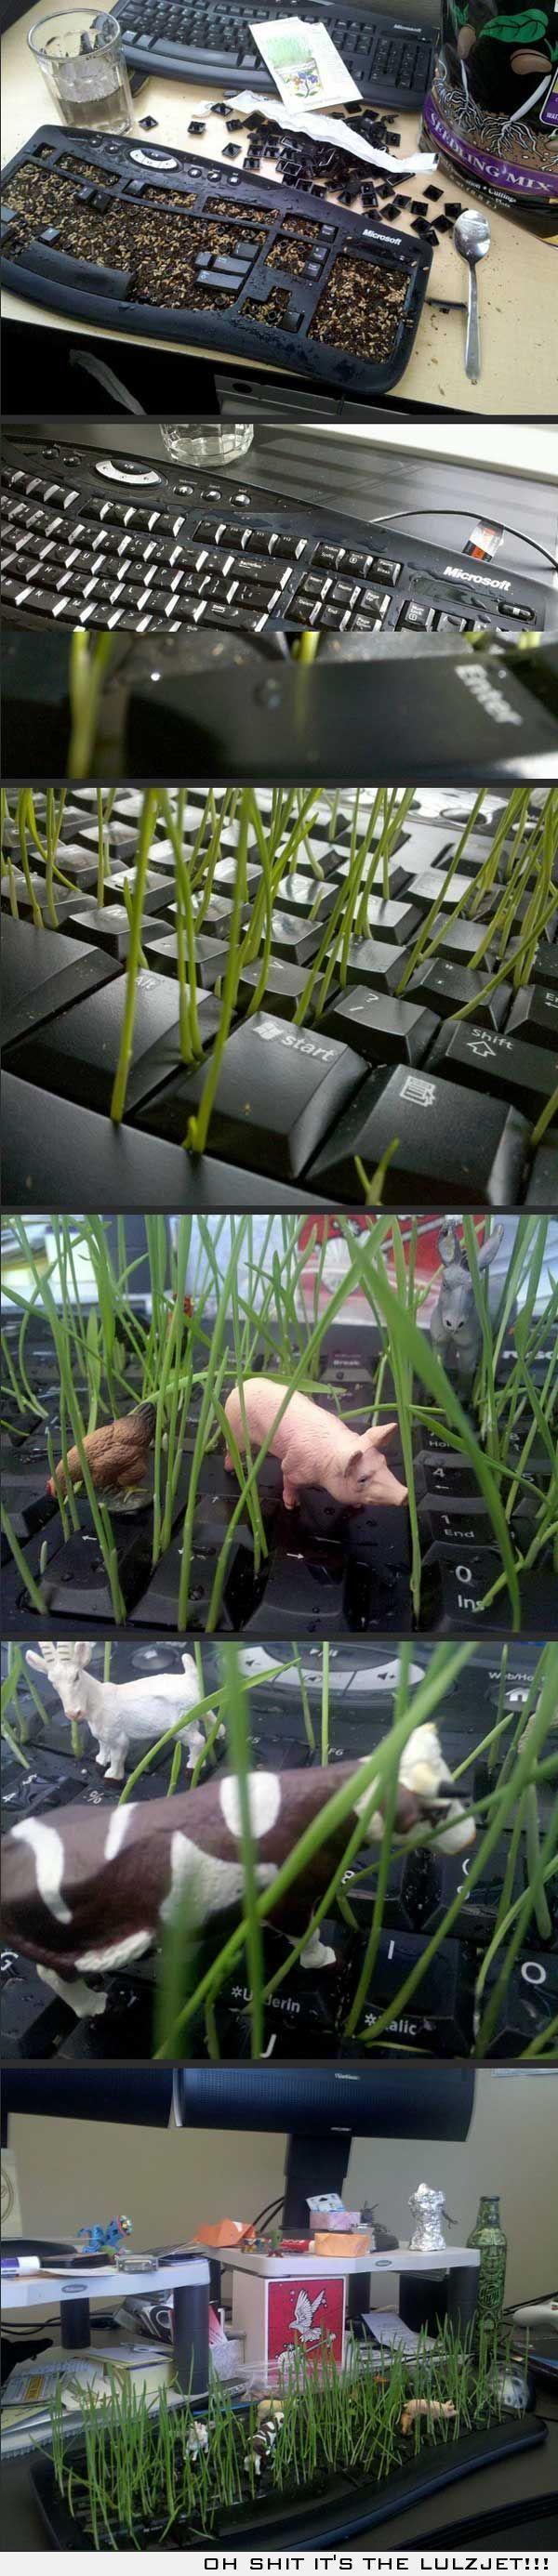 Planting a garden in a keyboard. Best office prank idea!